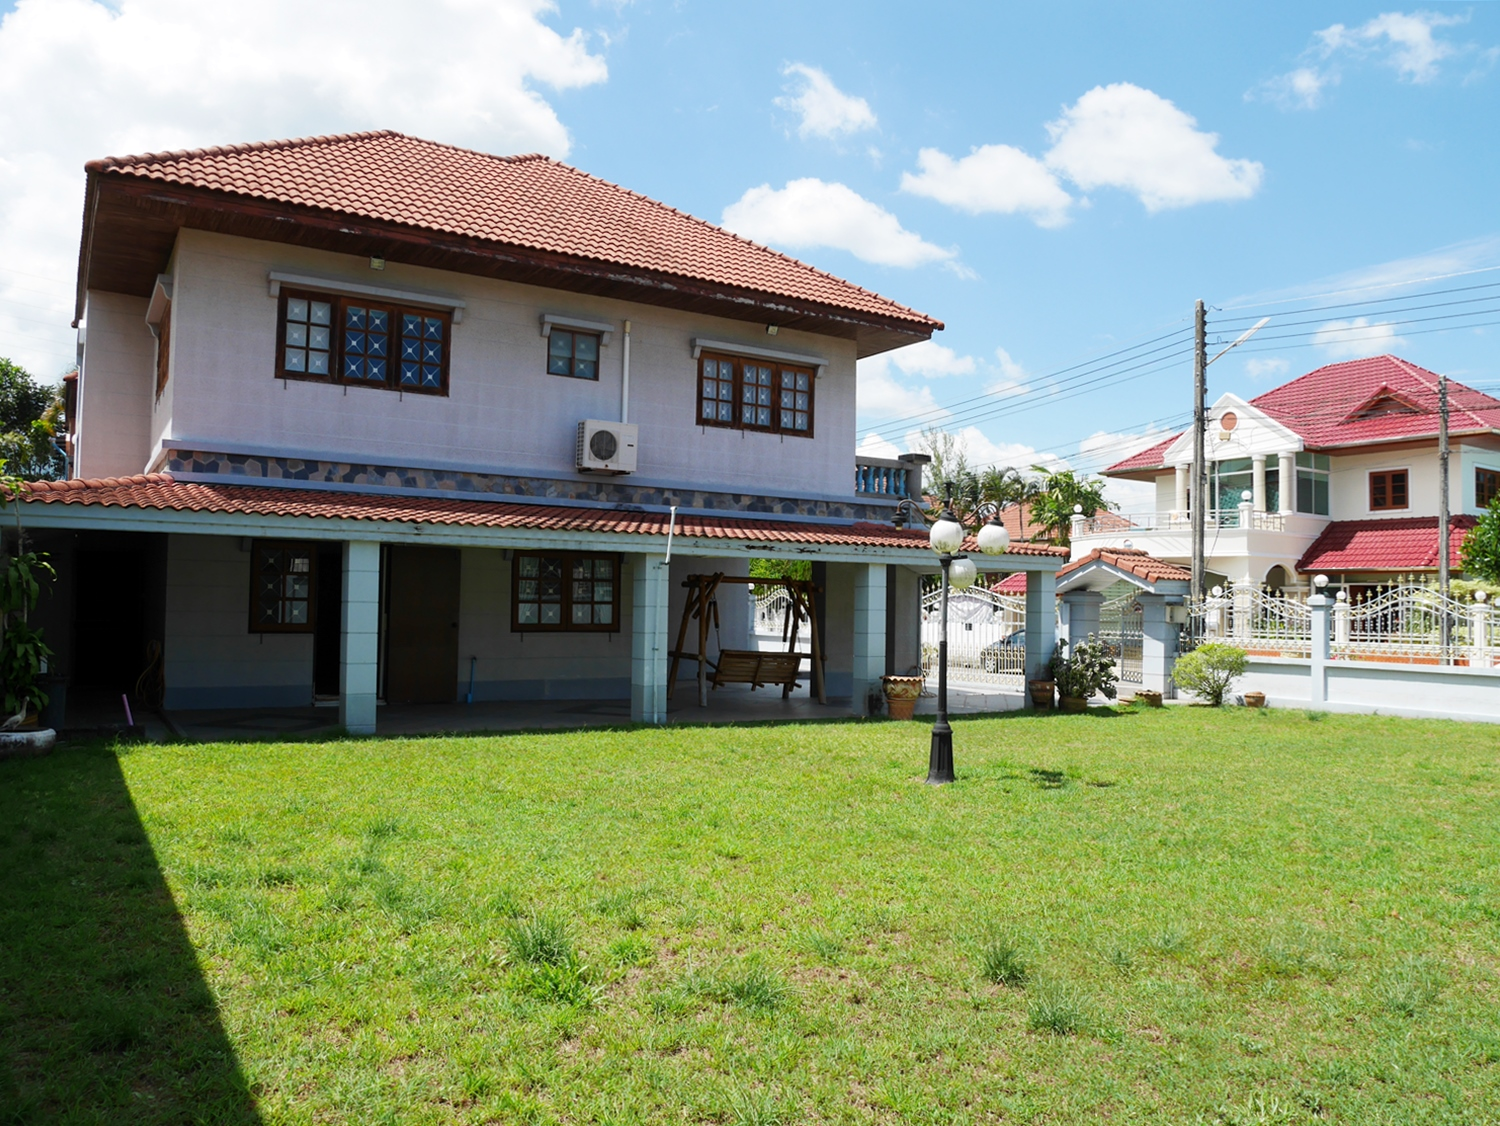 House & Land 504 square meter for sale 12.5 million in Kathu